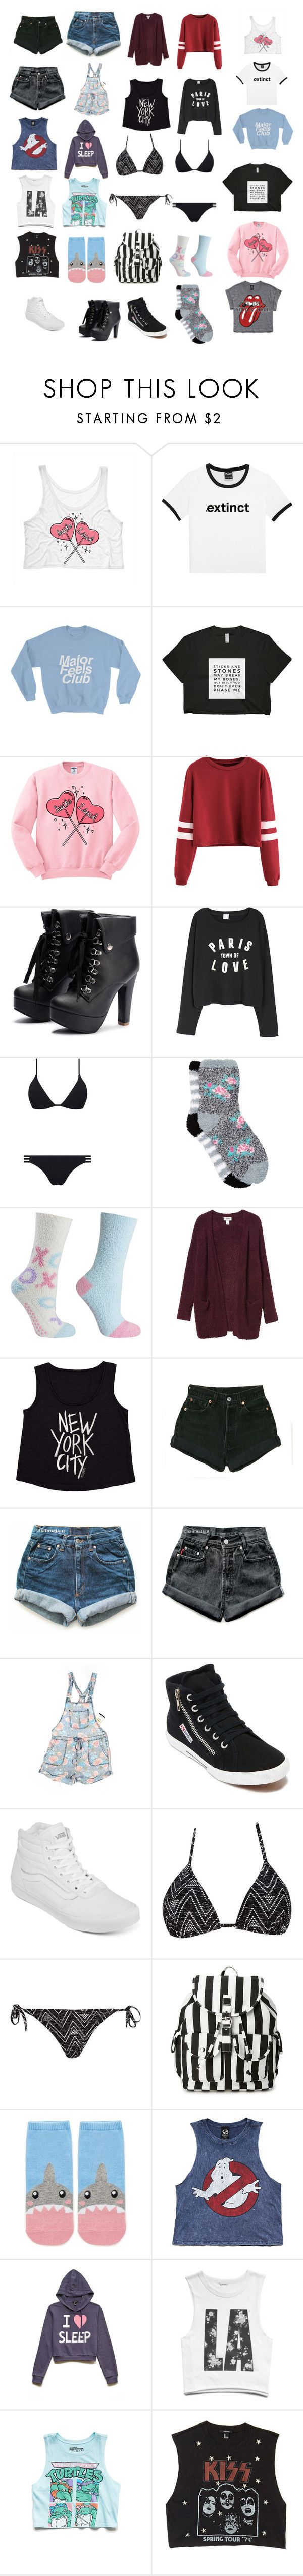 """Clothing Haul"" by lizyg1572 ❤ liked on Polyvore featuring Melissa Odabash, Free Press, MINX, Monki, Billabong, Levi's, American Rag Cie, Superga, Vans and Forever 21"